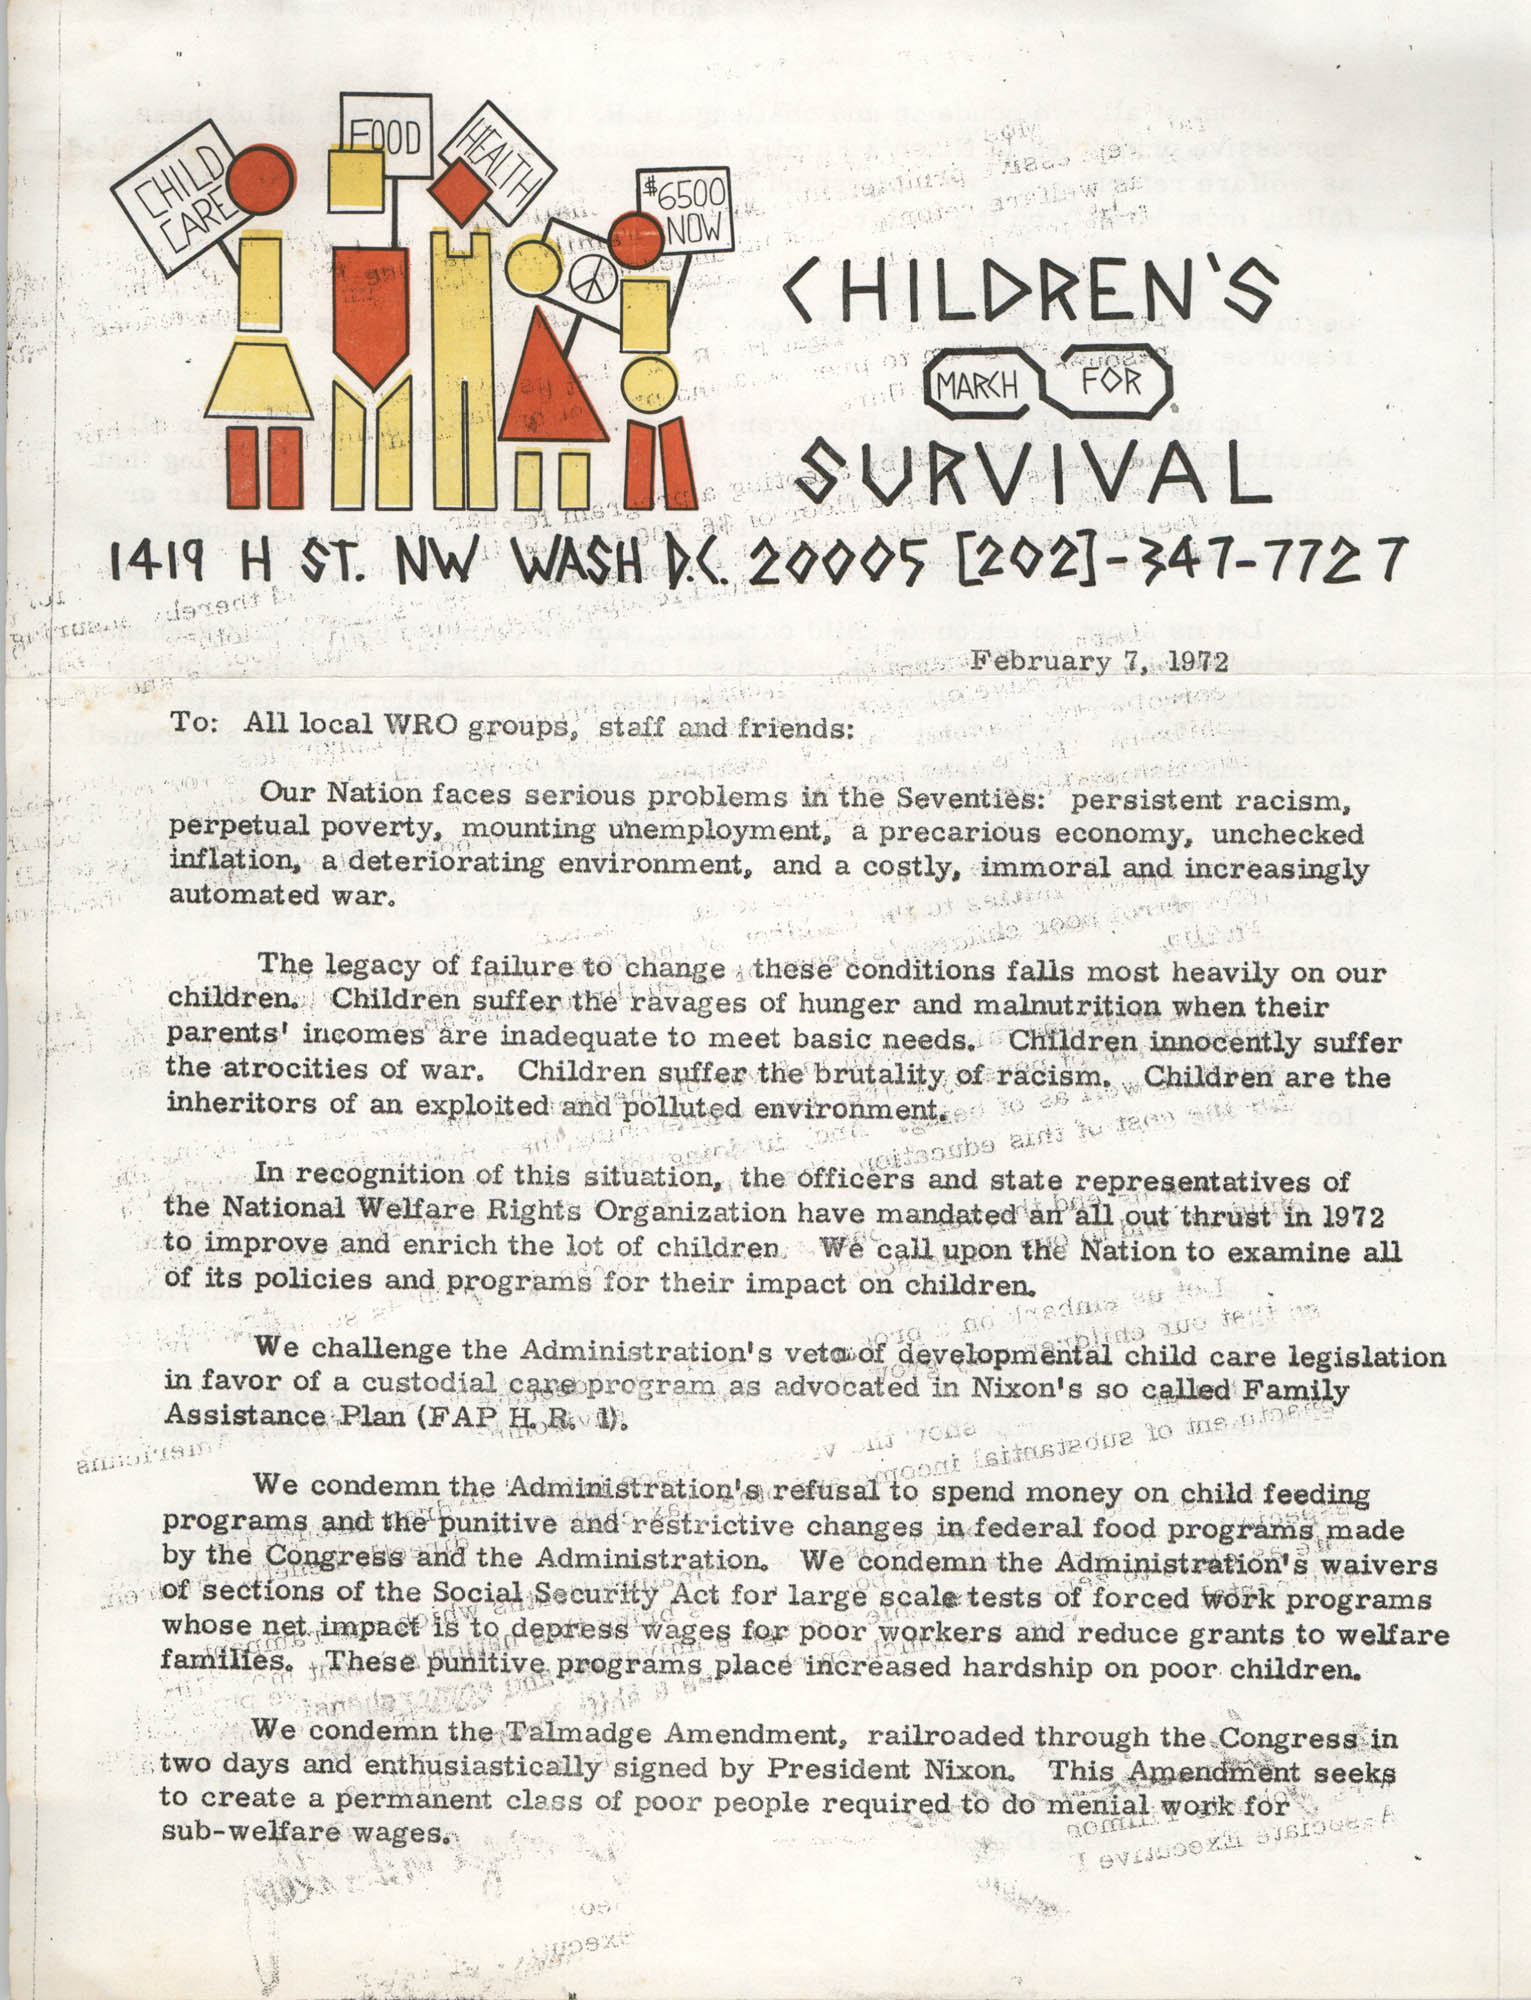 Letter from Johnnie Tillmon and George A. Wiley to All World Rights Organizations, February 7, 1972